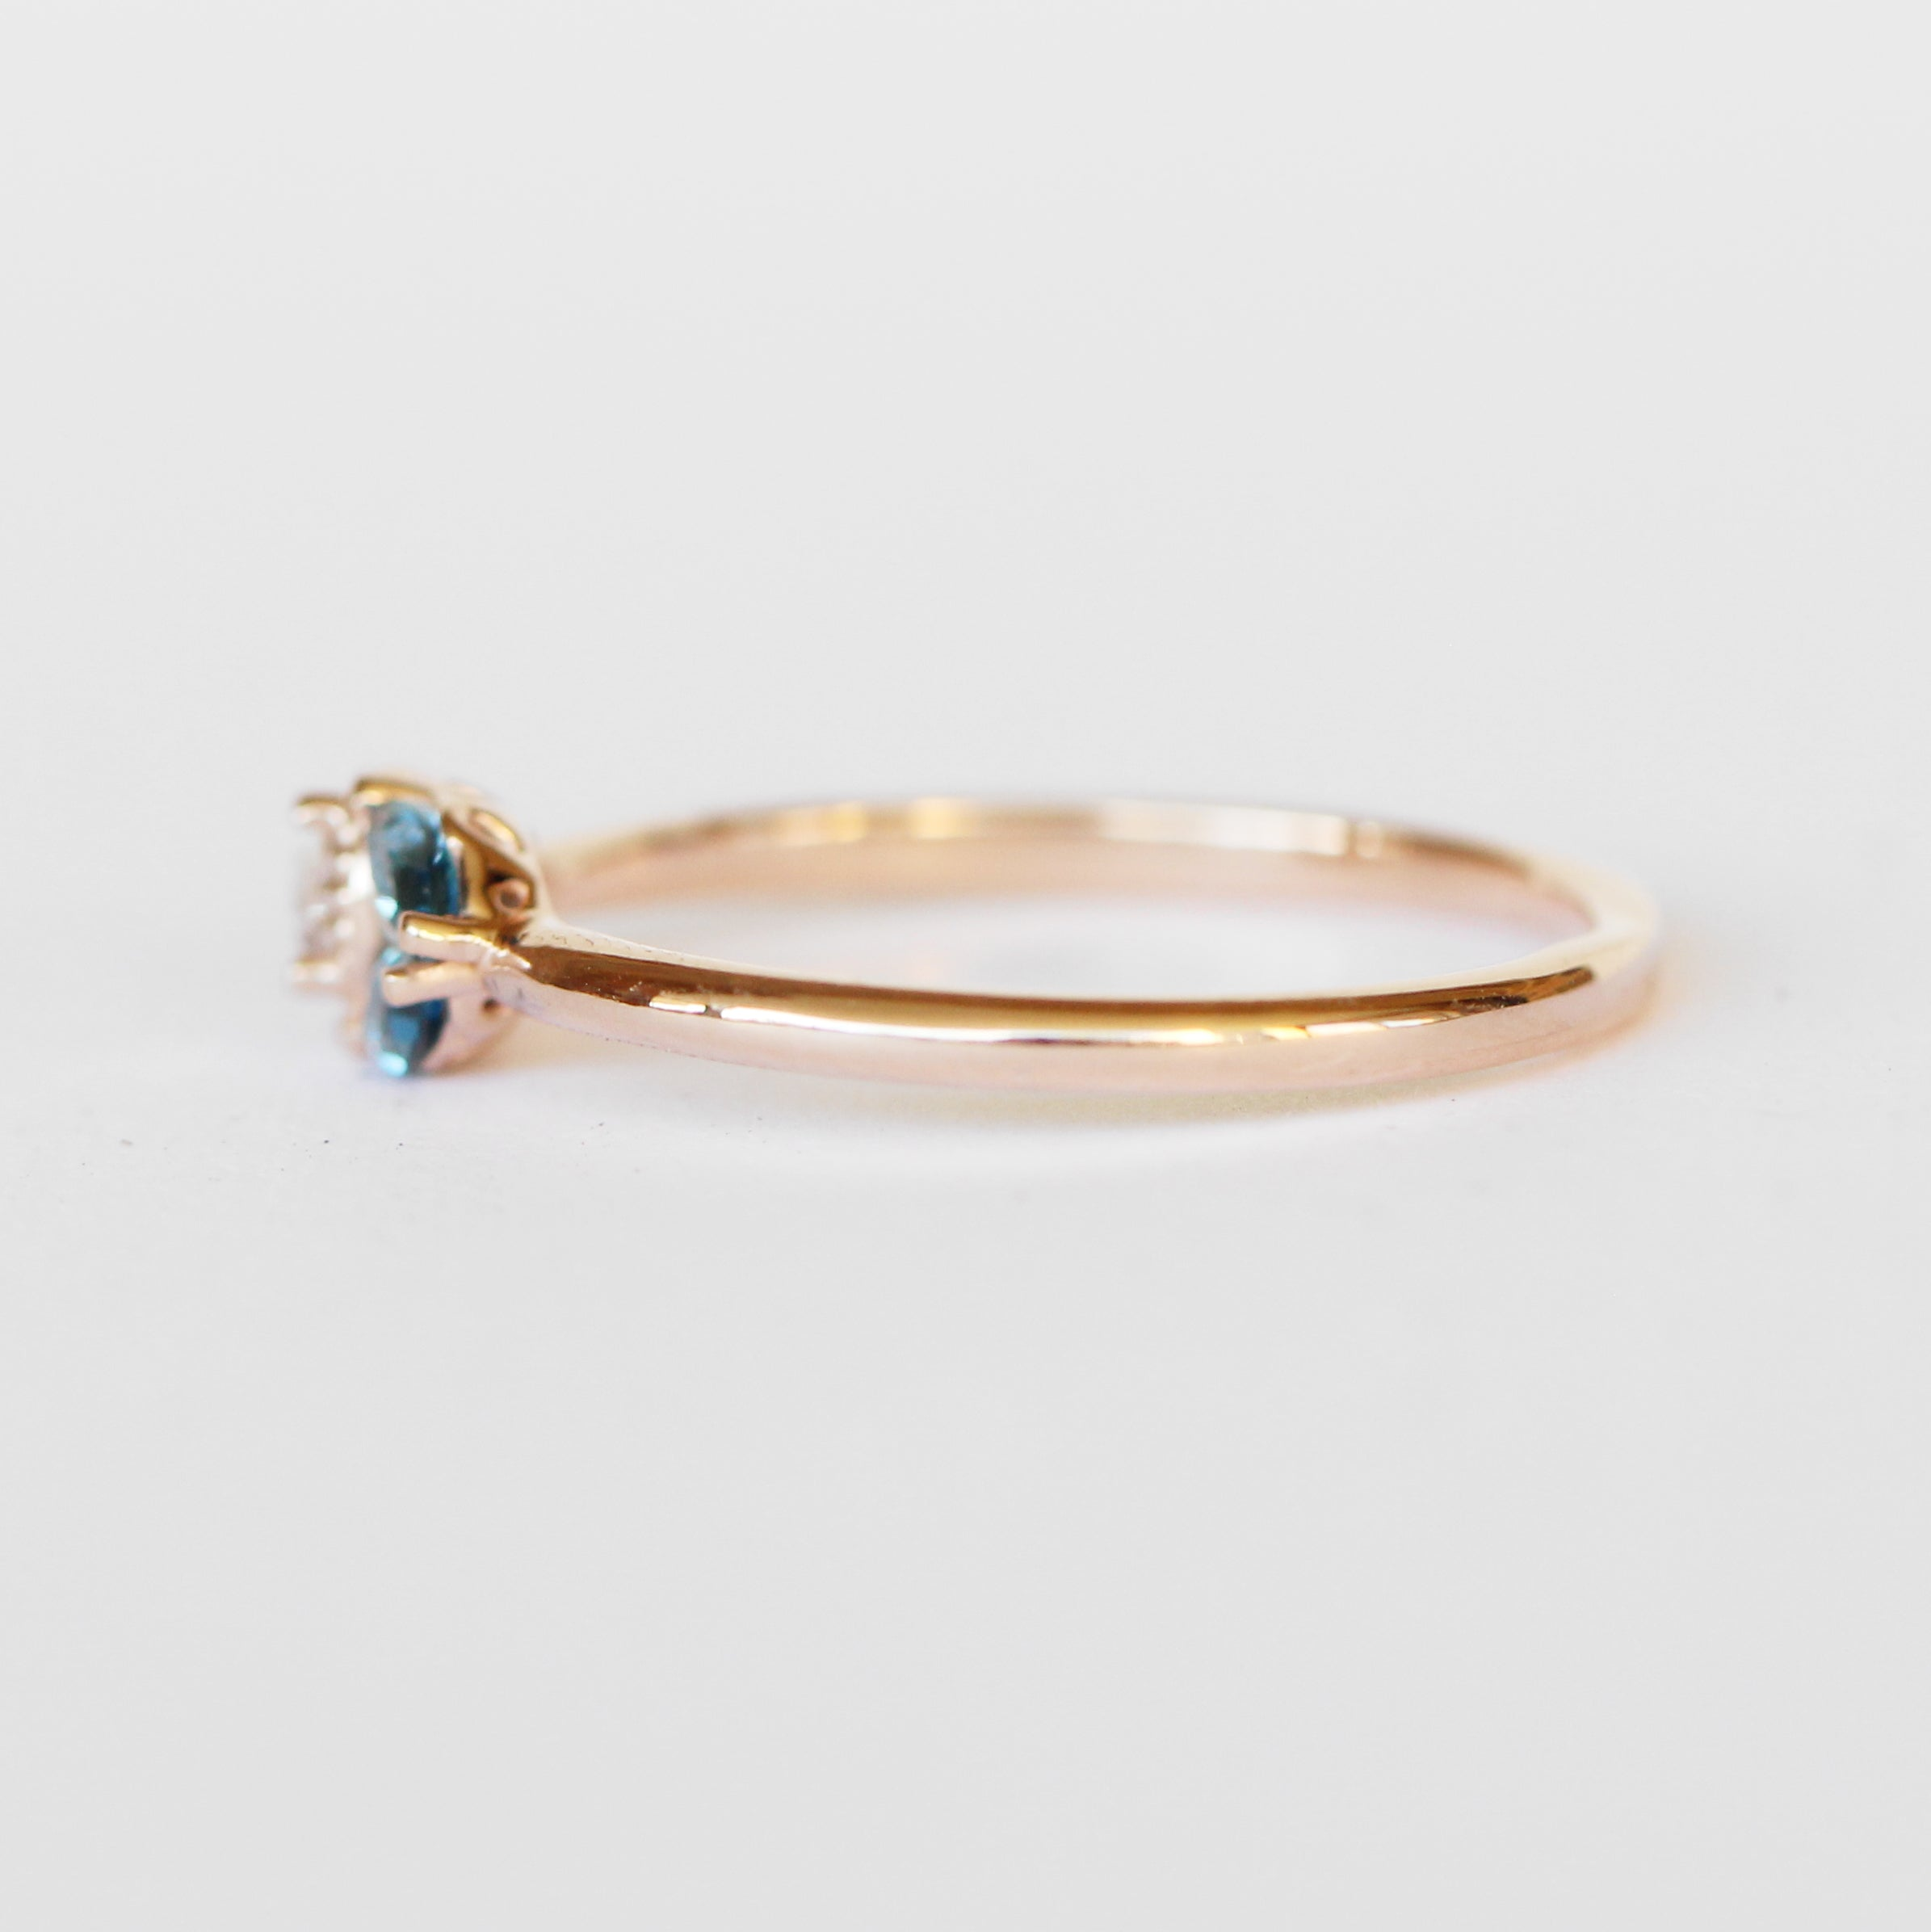 Ariana Ring with London Blue Topaz Marquise + Sapphire Pear in 14k Gold - Made to Order - Midwinter Co. Alternative Bridal Rings and Modern Fine Jewelry